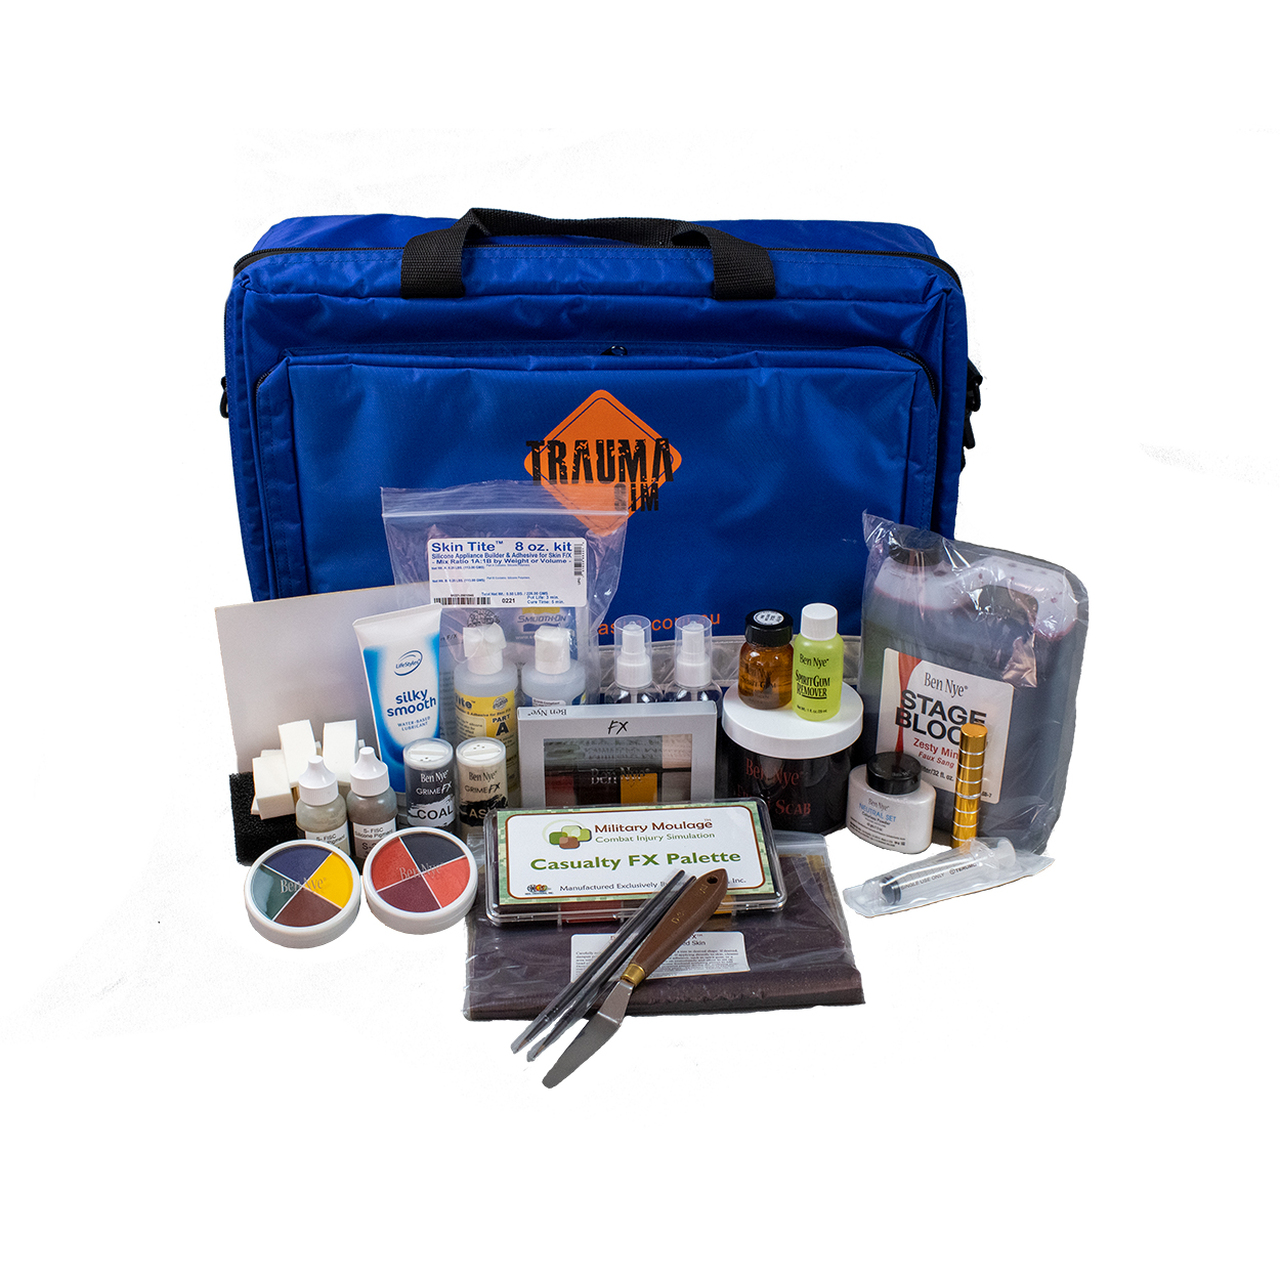 TraumaSim Advanced Moulage Kit with professional quality moulage products and consumables.